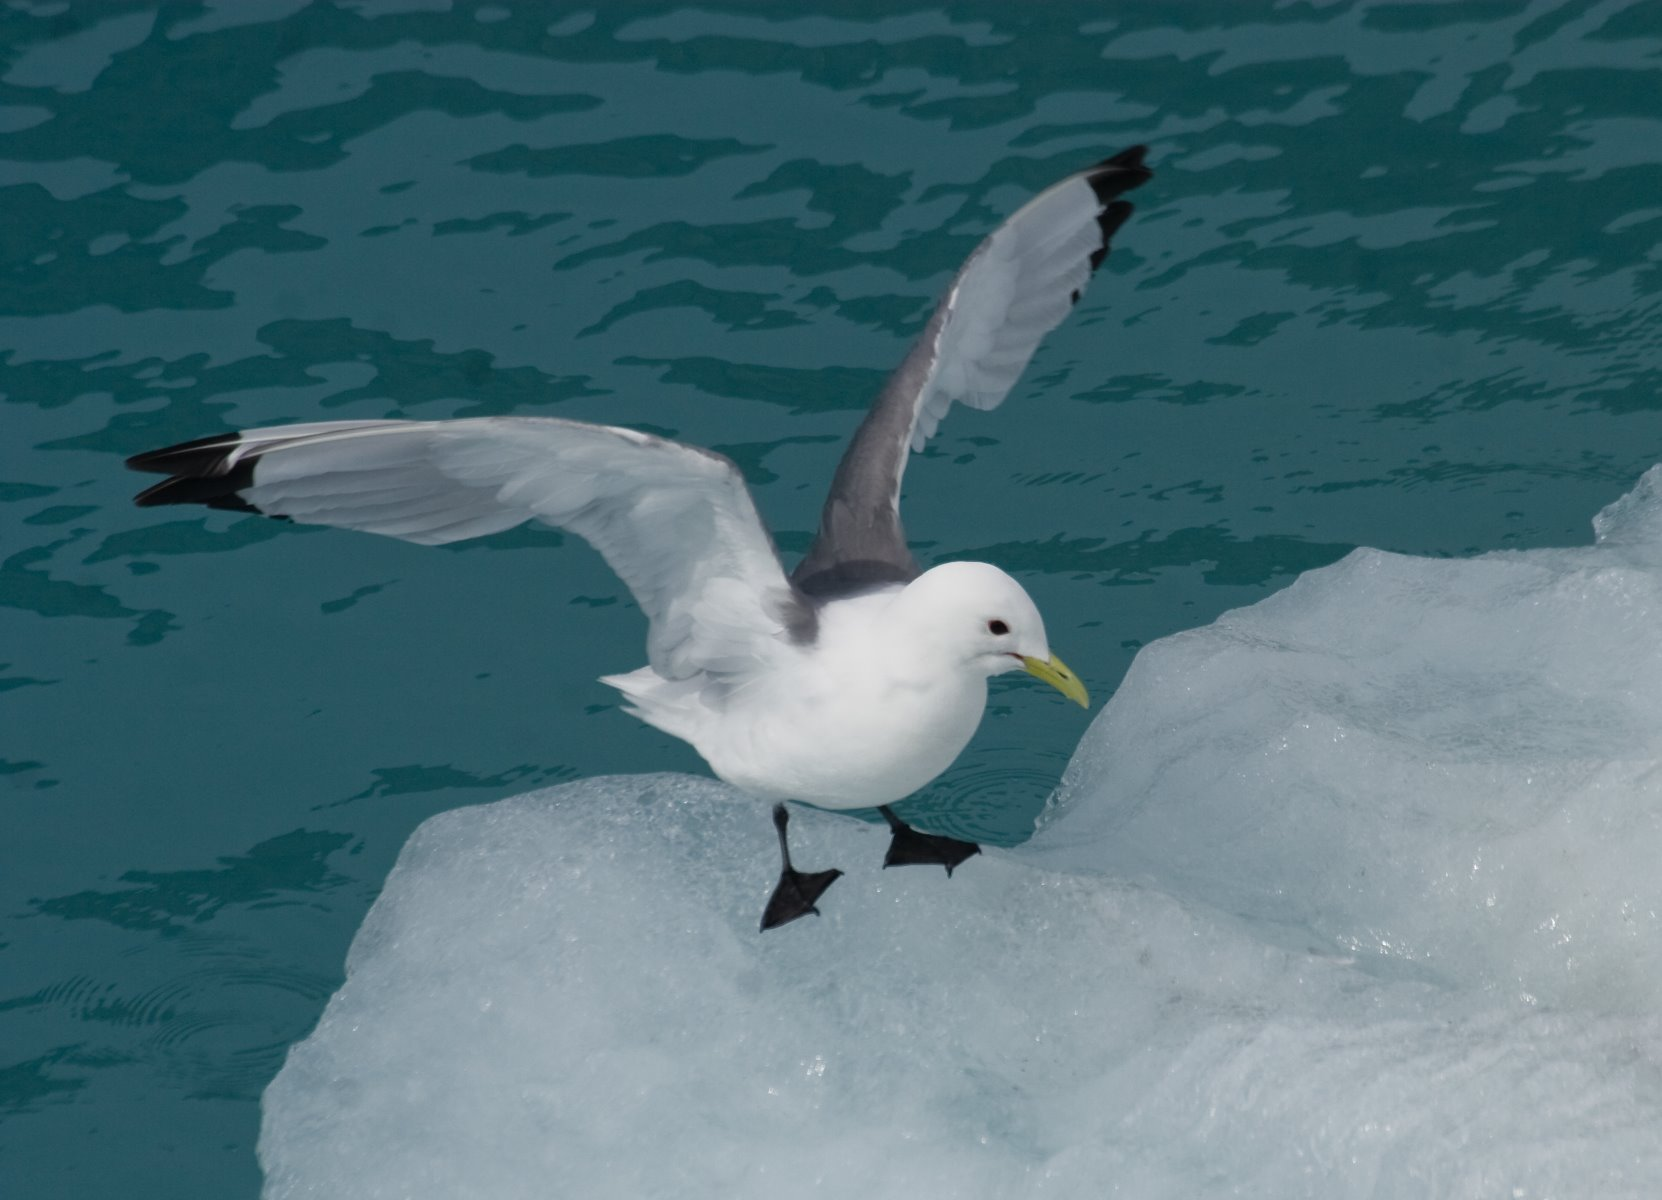 Black-legged kittiwakes are a fairly common sight near the faces of Glacier Bay's